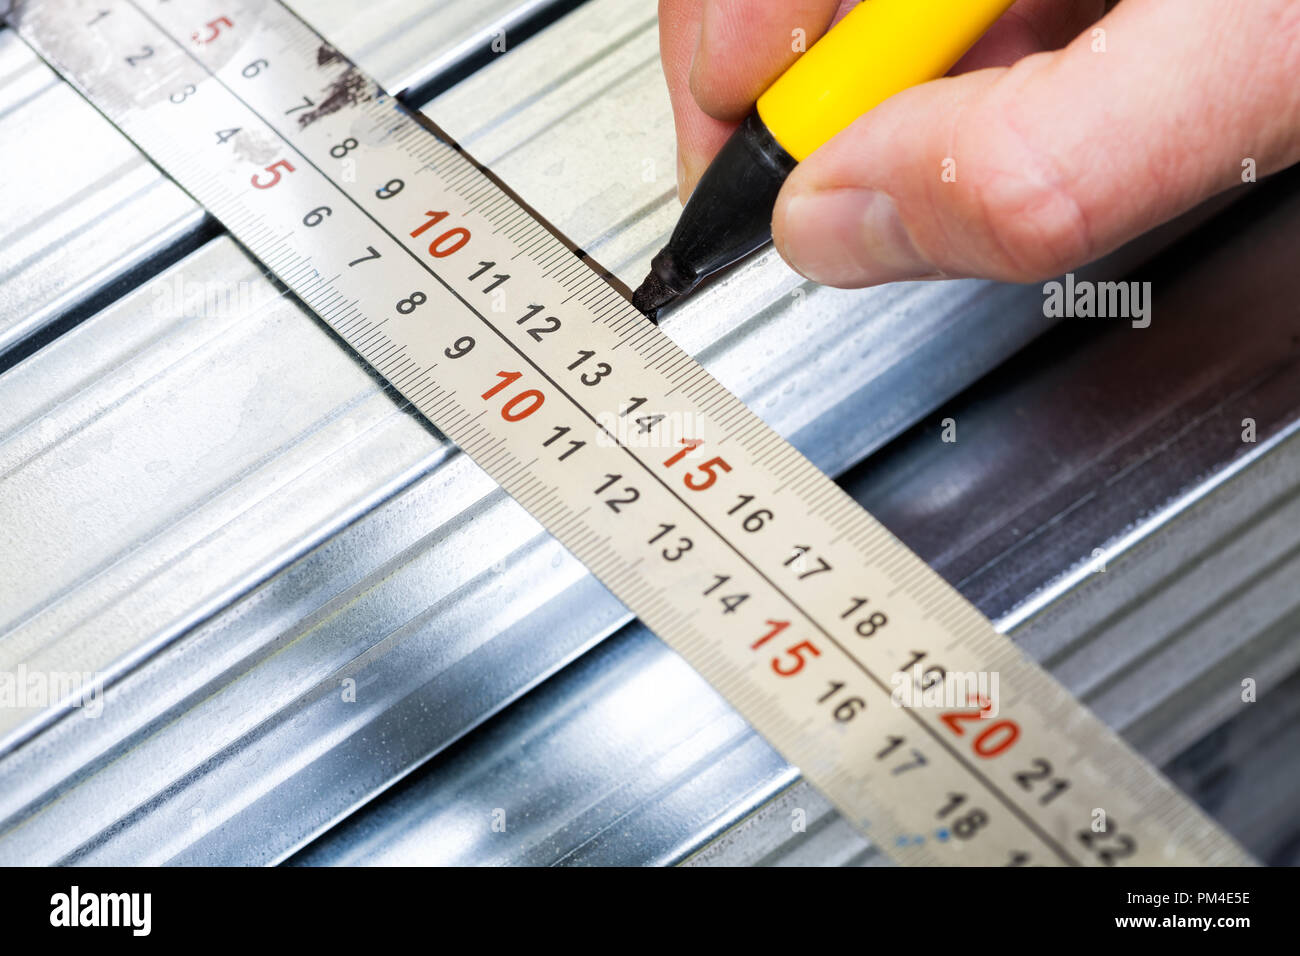 Person marking a  measurement on a metal stud with marker pen while constructing plasterboard frame - Stock Image